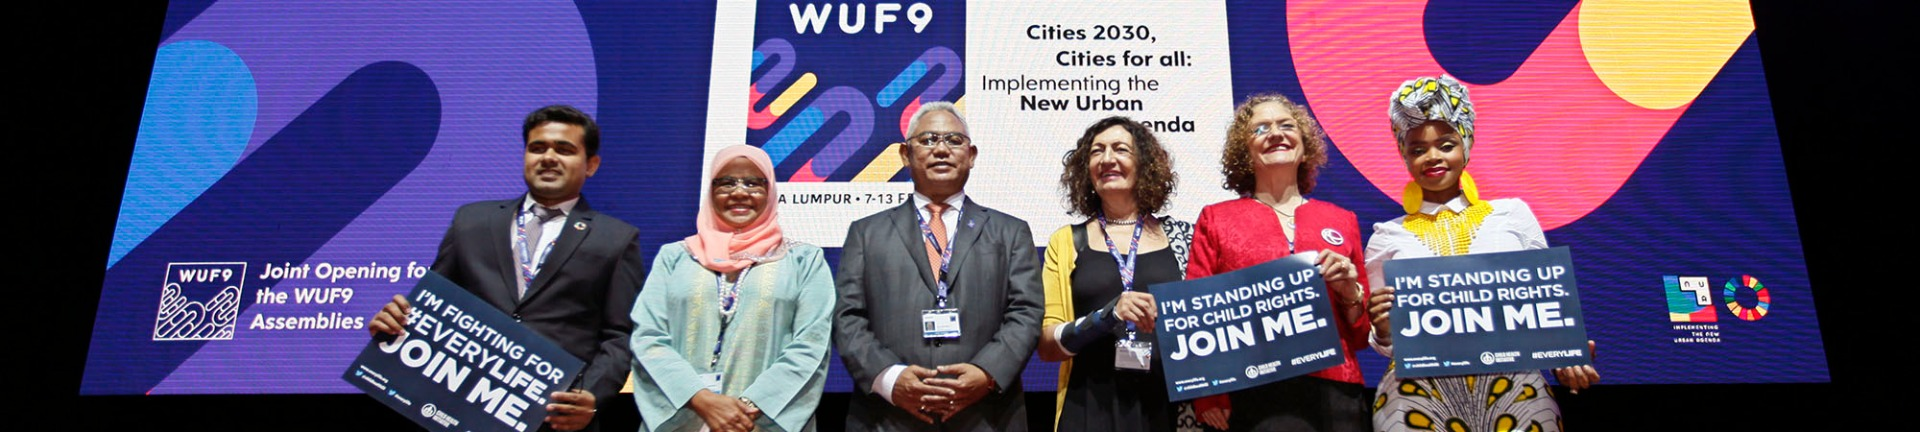 World Urban Forum